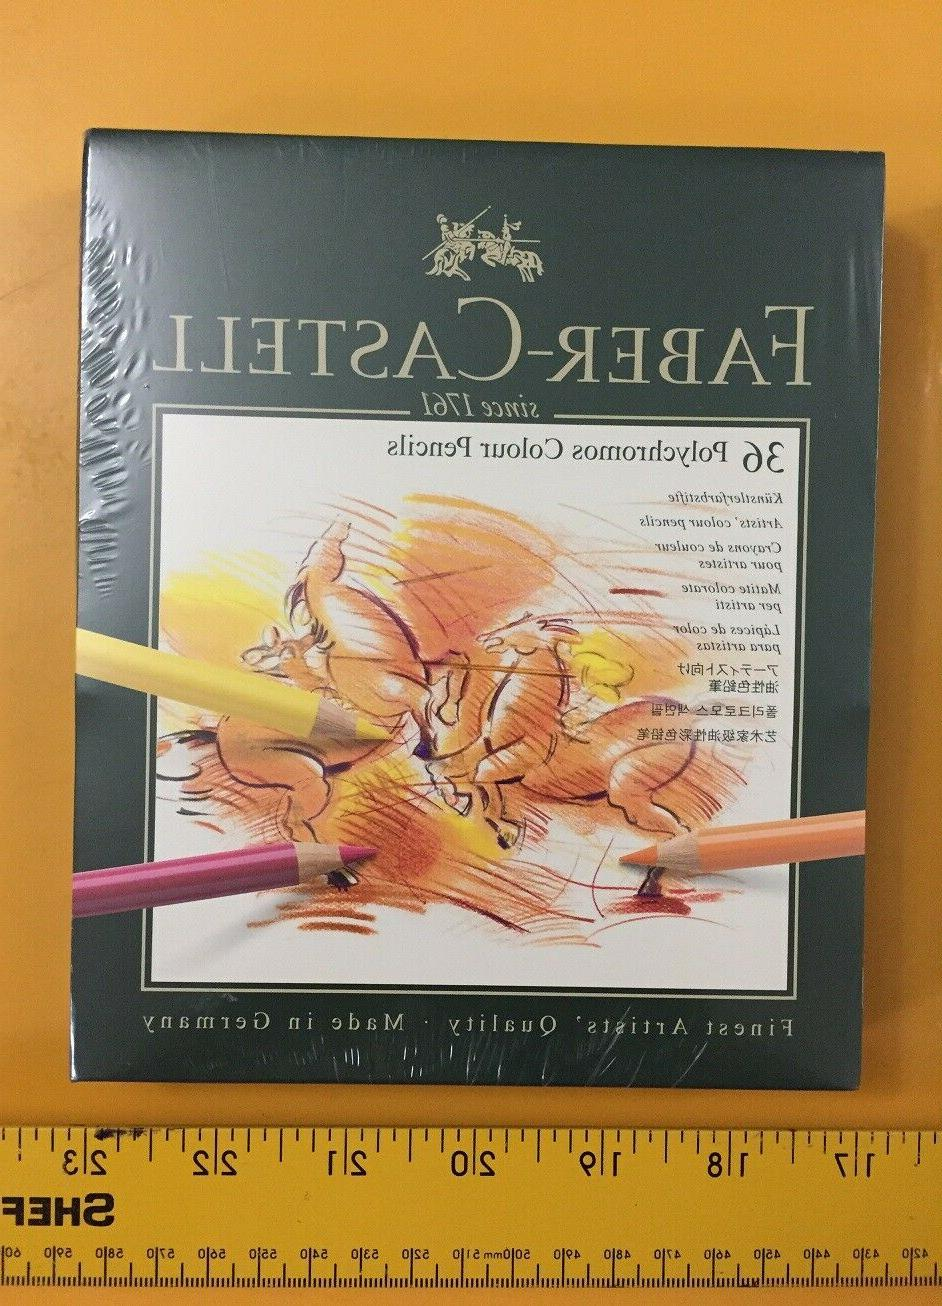 new faber castell polychromos colored pencils gift